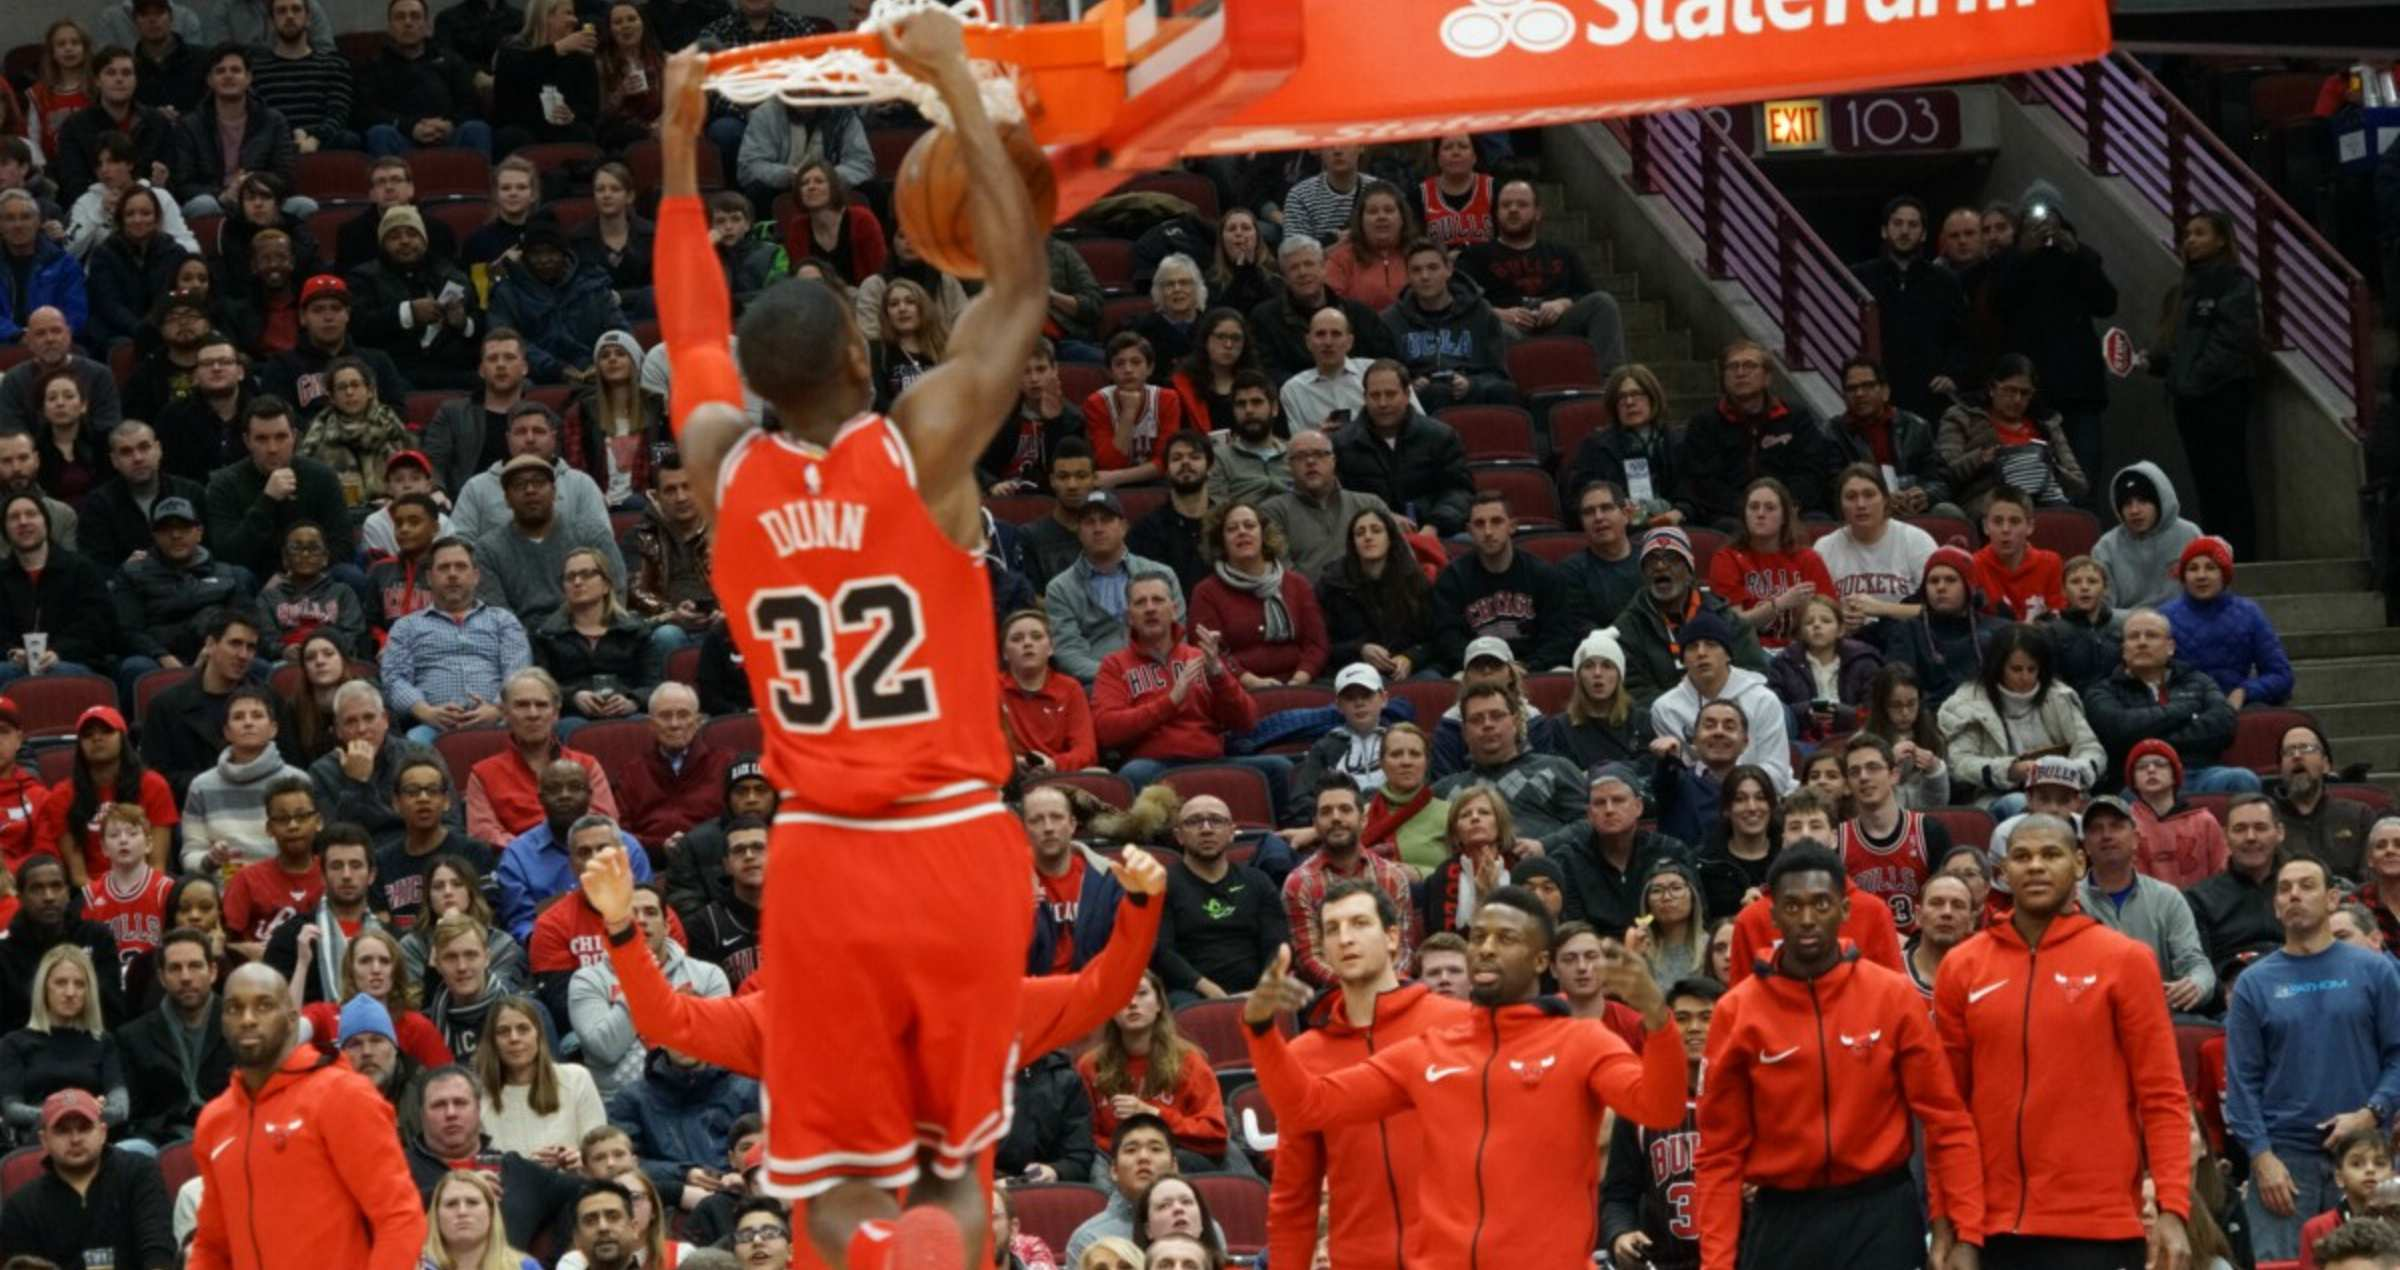 Kris Dunn dunks over New York, as they win their second-straight game.